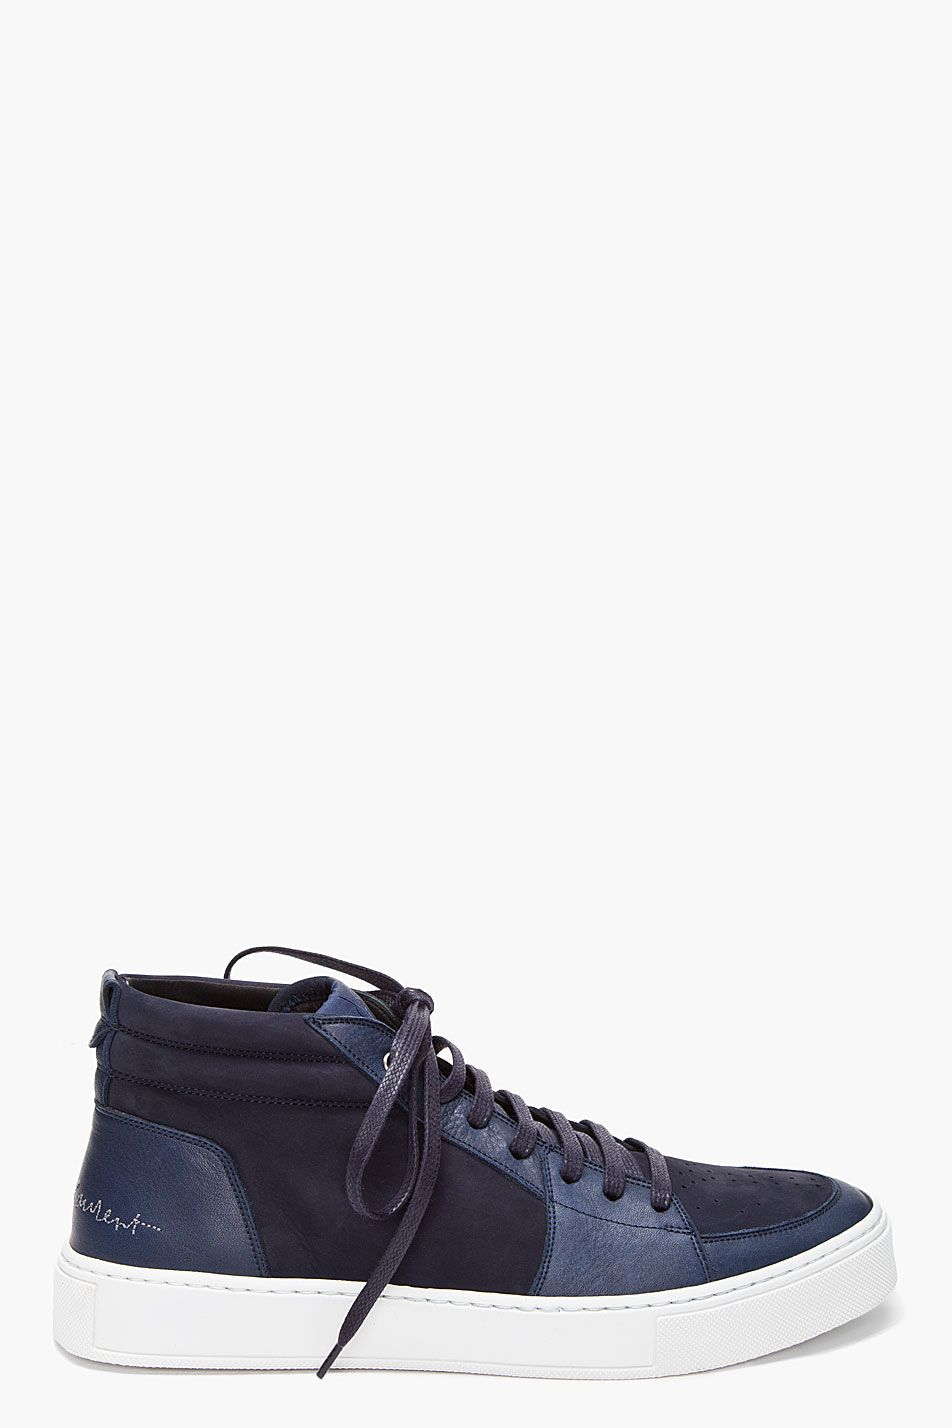 a9d49a7369f Yves Saint Laurent Navy Mid Malibu Sneakers | mode för men | Shoes ...